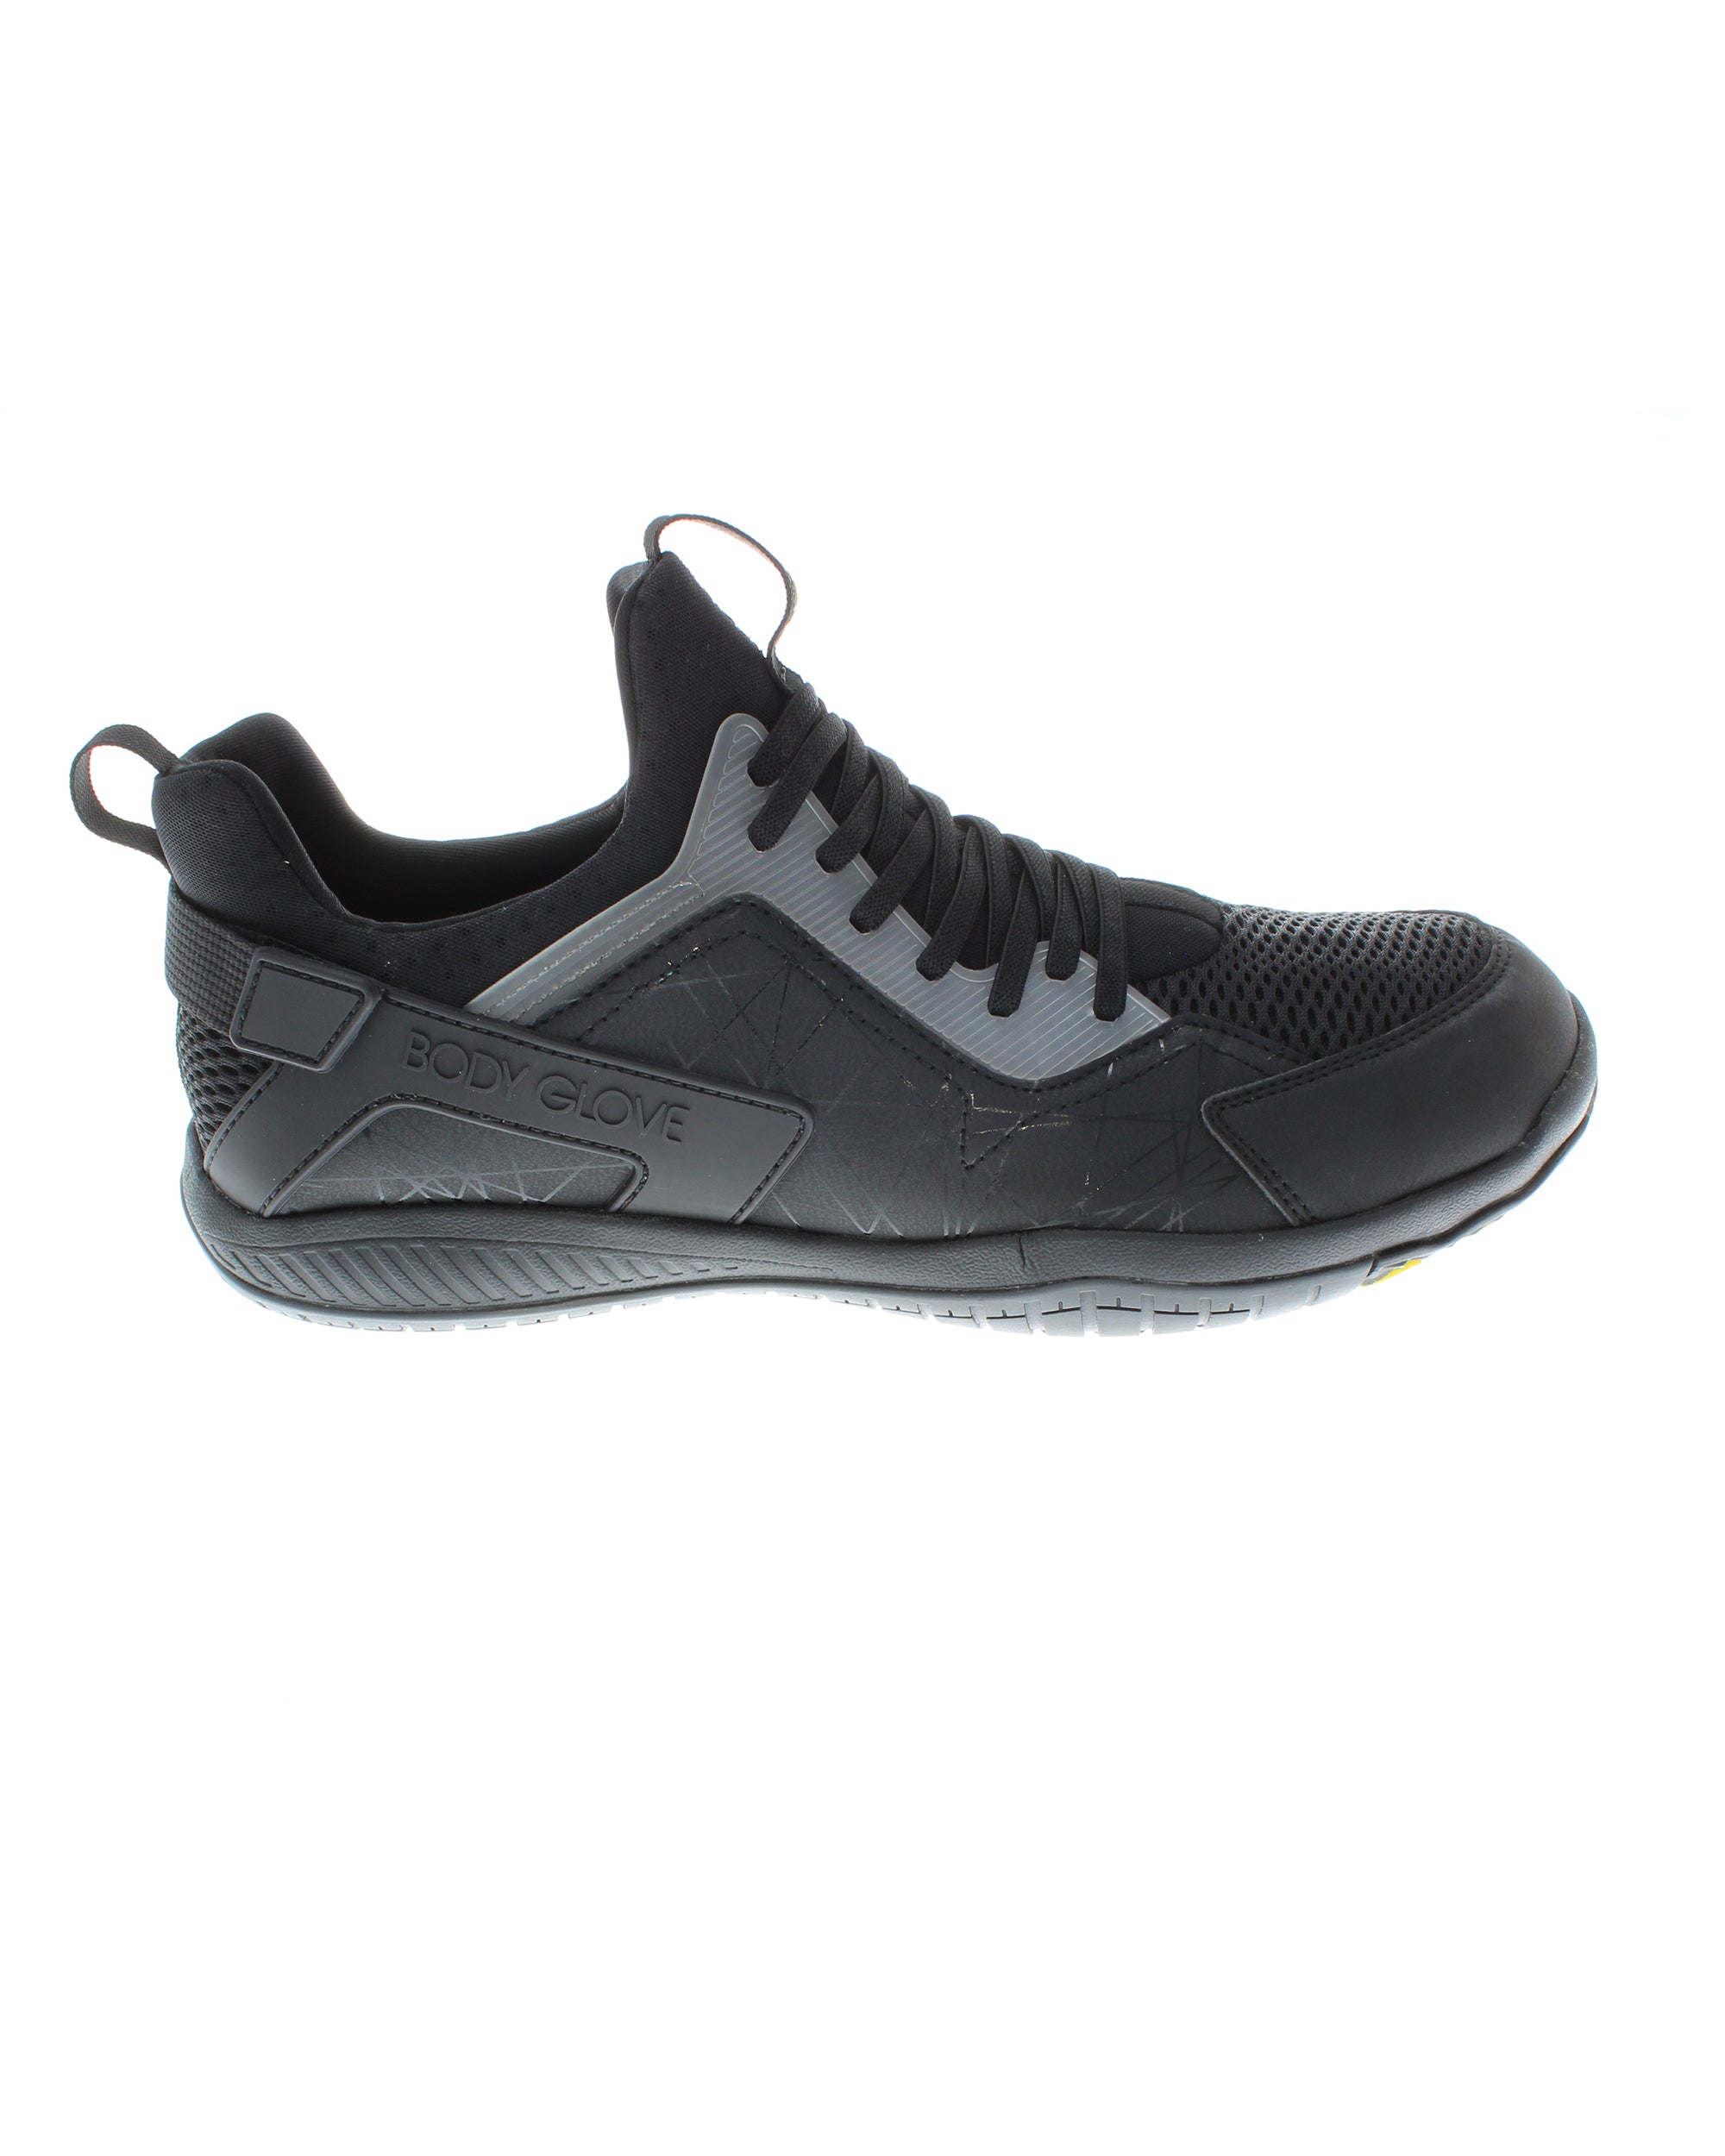 Men's Dynamo V-Class Water Shoes - Black/Yellow